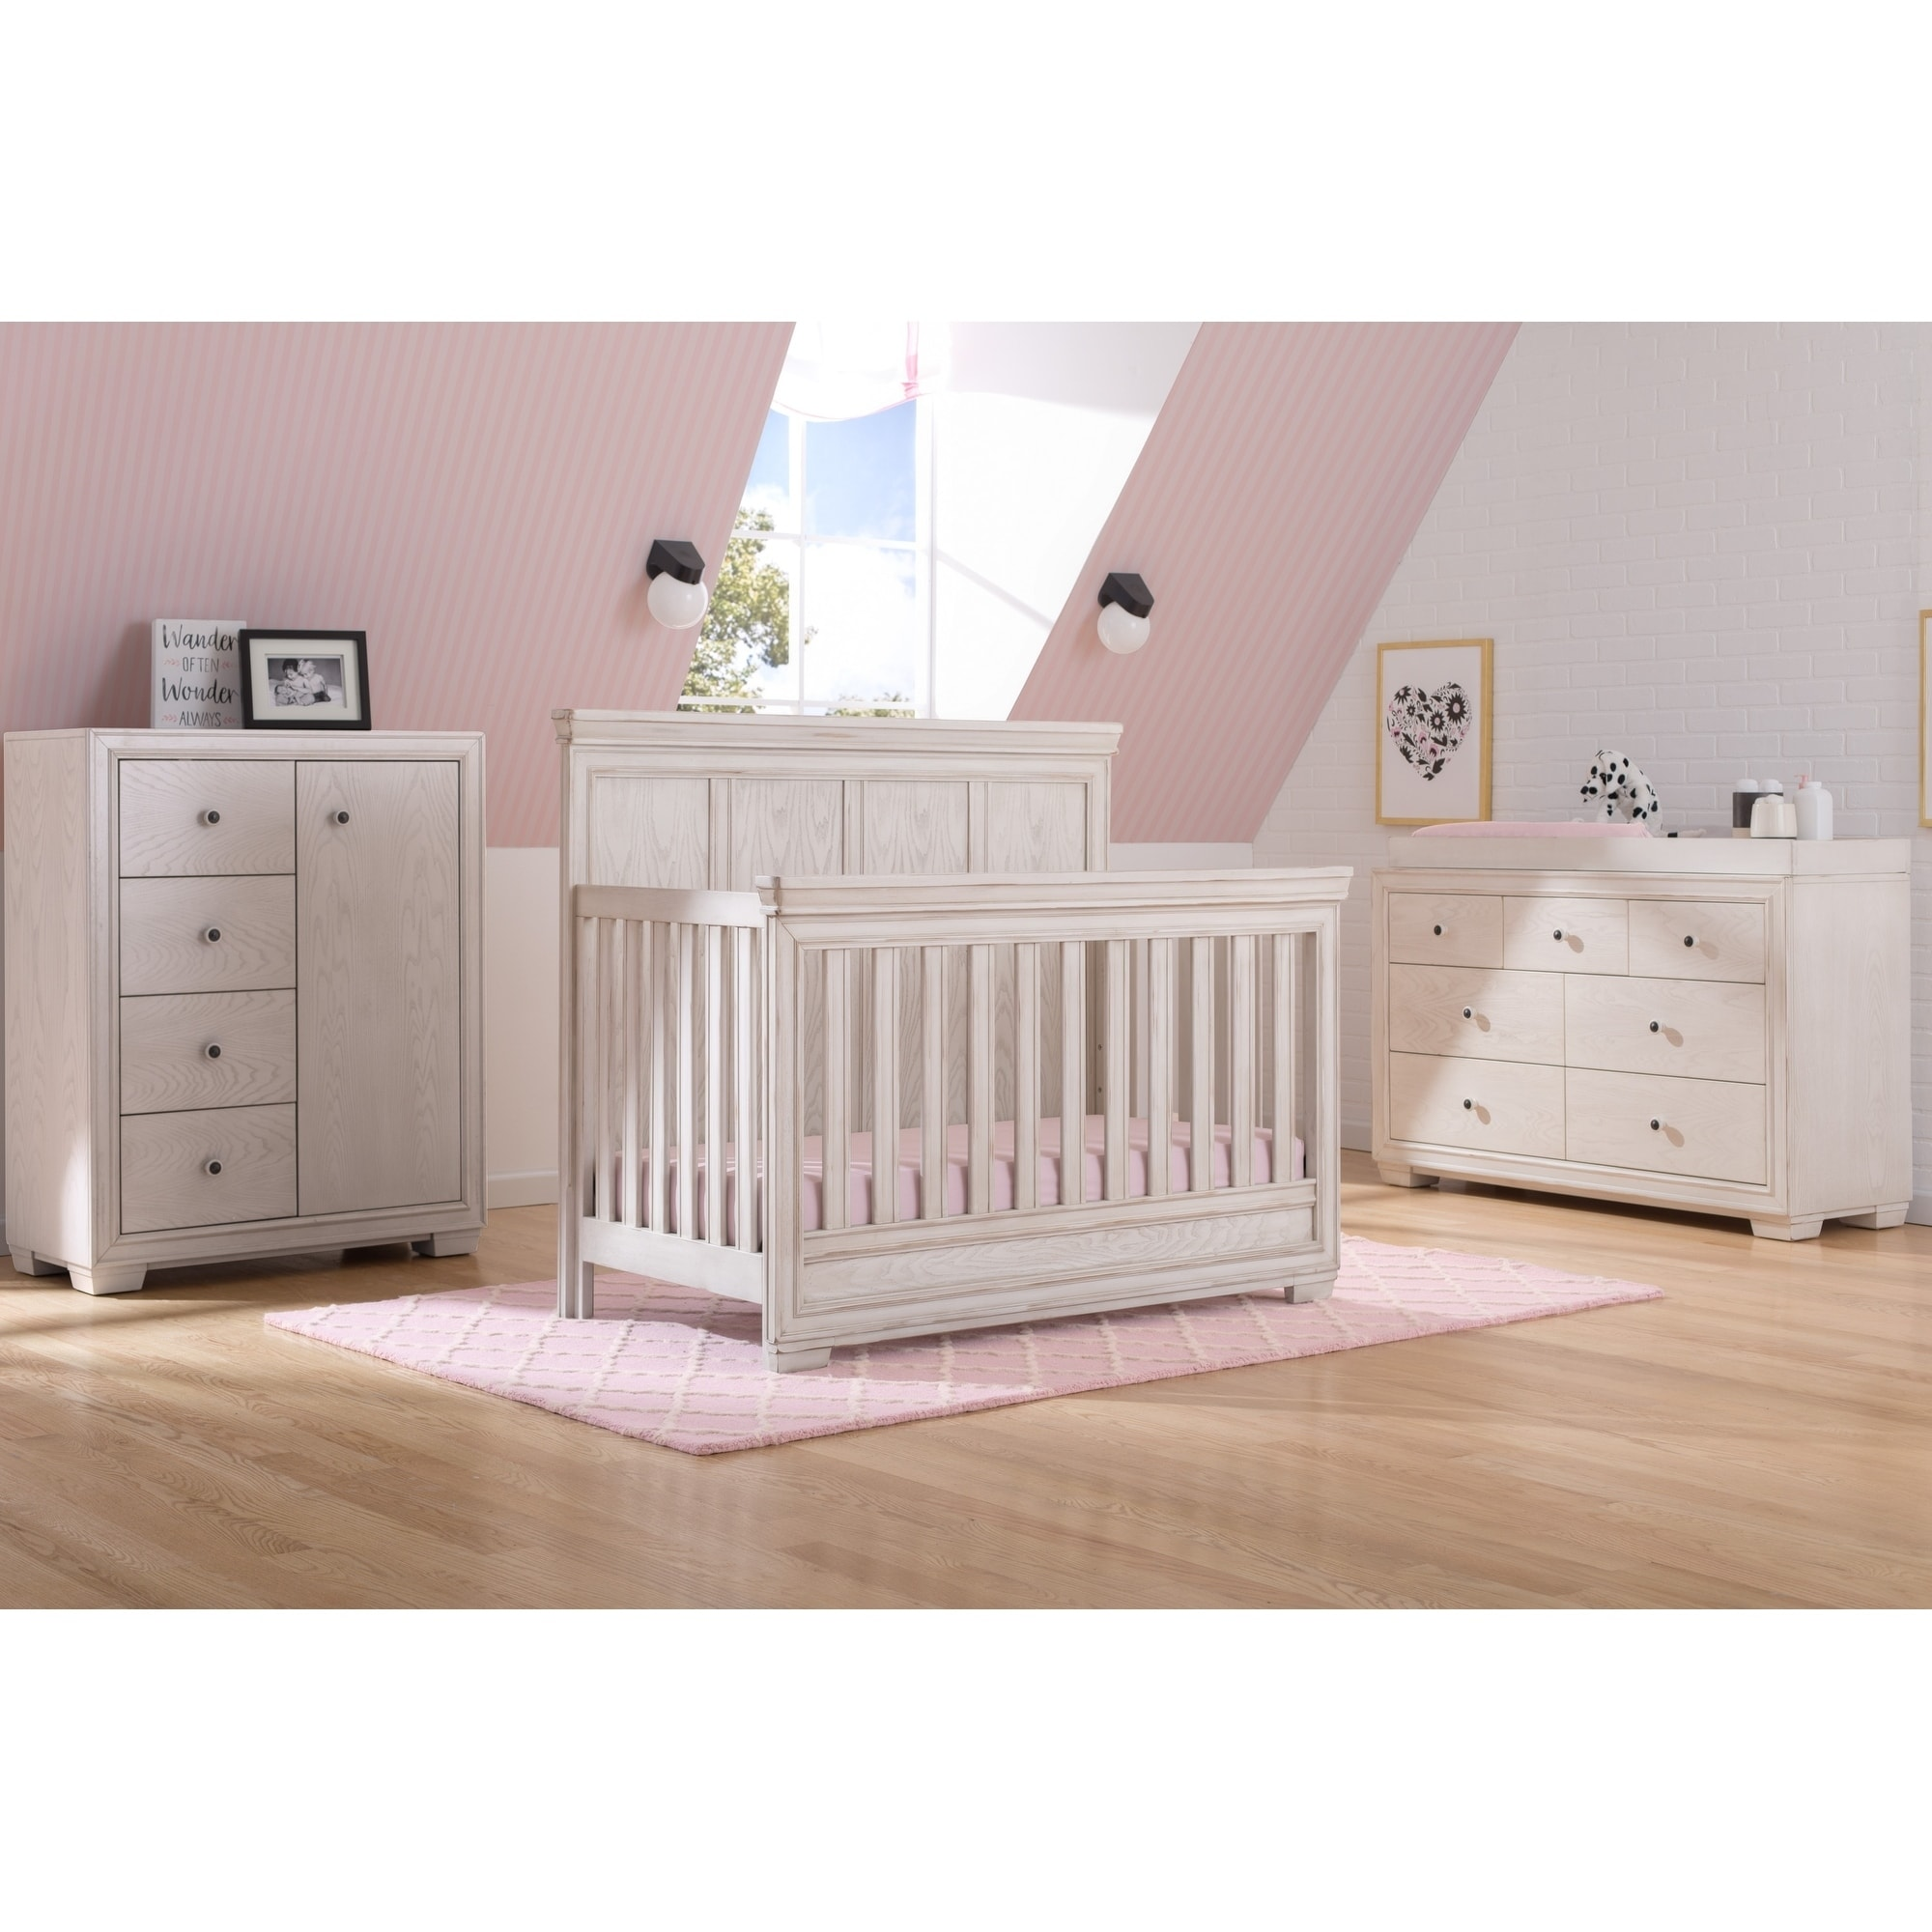 simmons nursery furniture. Simmons Kids Ravello Convertible Crib N More - Free Shipping Today Overstock 24185297 Nursery Furniture